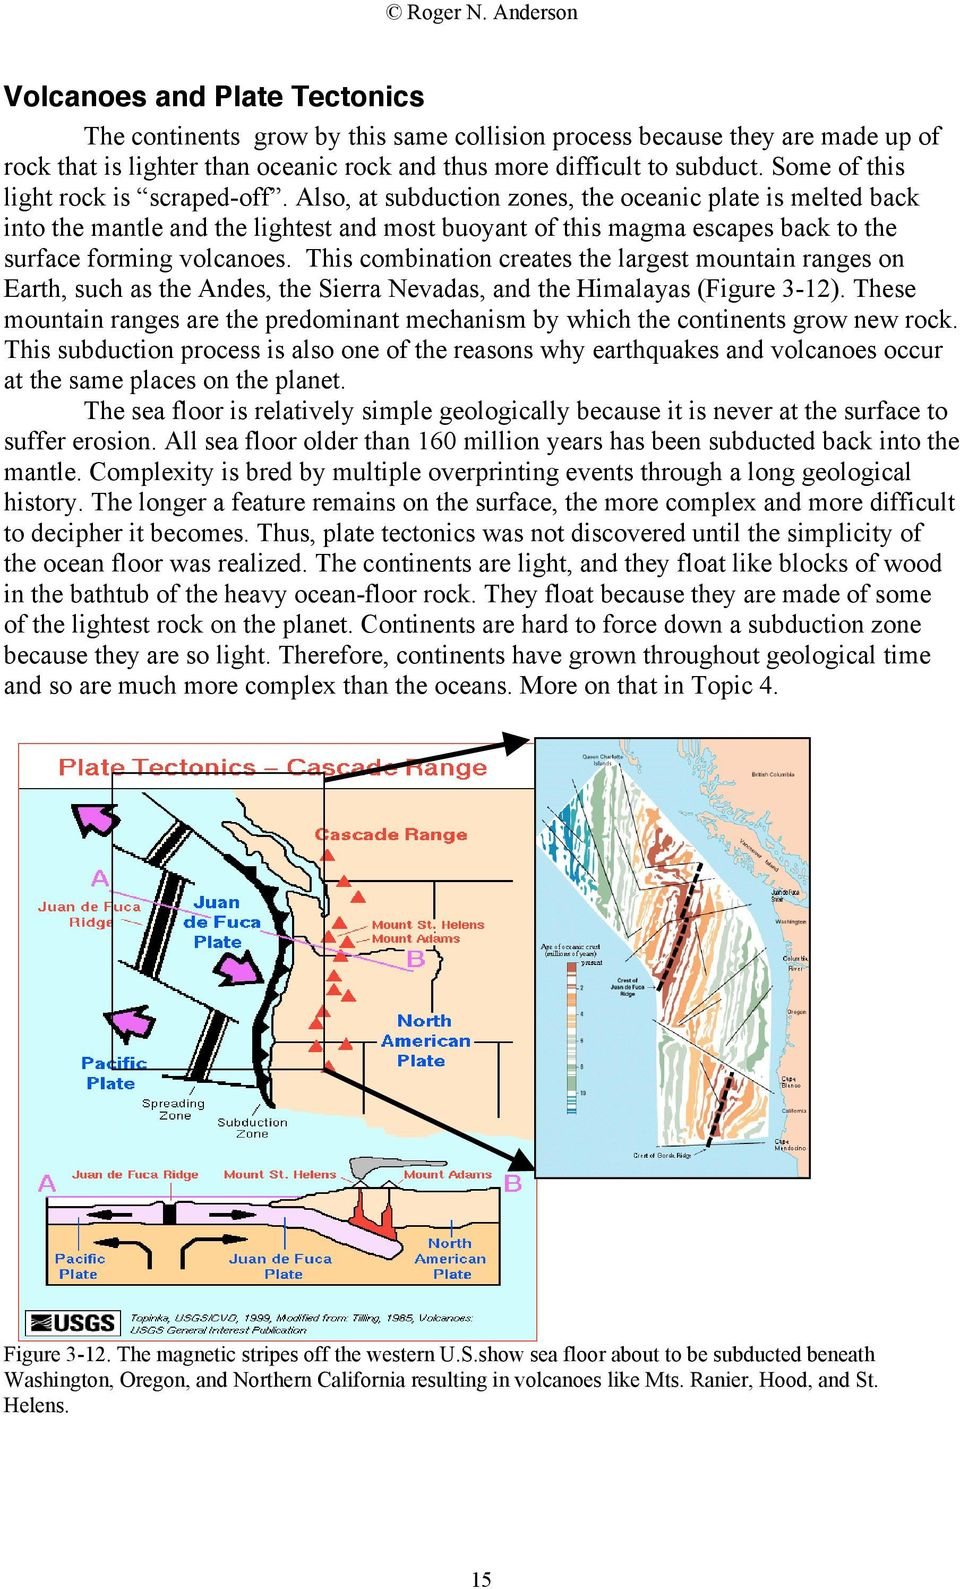 Why is there so much geological danger along the boundaries of the Pacific Ocean? A visual inspection of the distribution of earthquakes around the margins of the Pacific hints at the explanation.